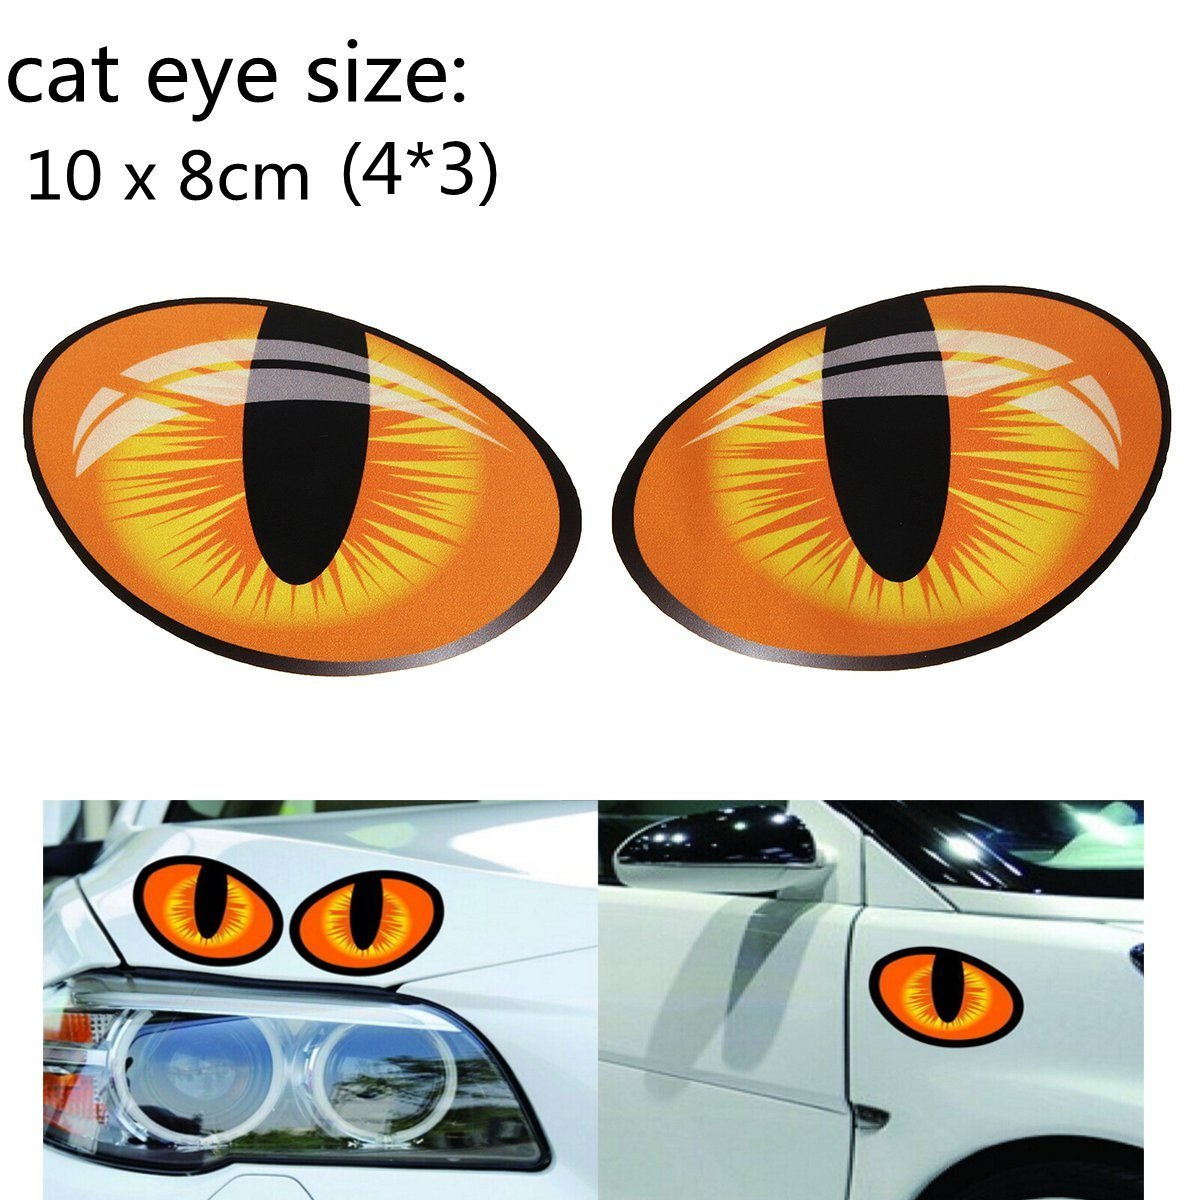 MONNY 108cm 3D Funny Reflective Cat Eyes Car Stickers Truck Window Door Decal Graphics Sticker Decals On Cars Rearview Mirror Head